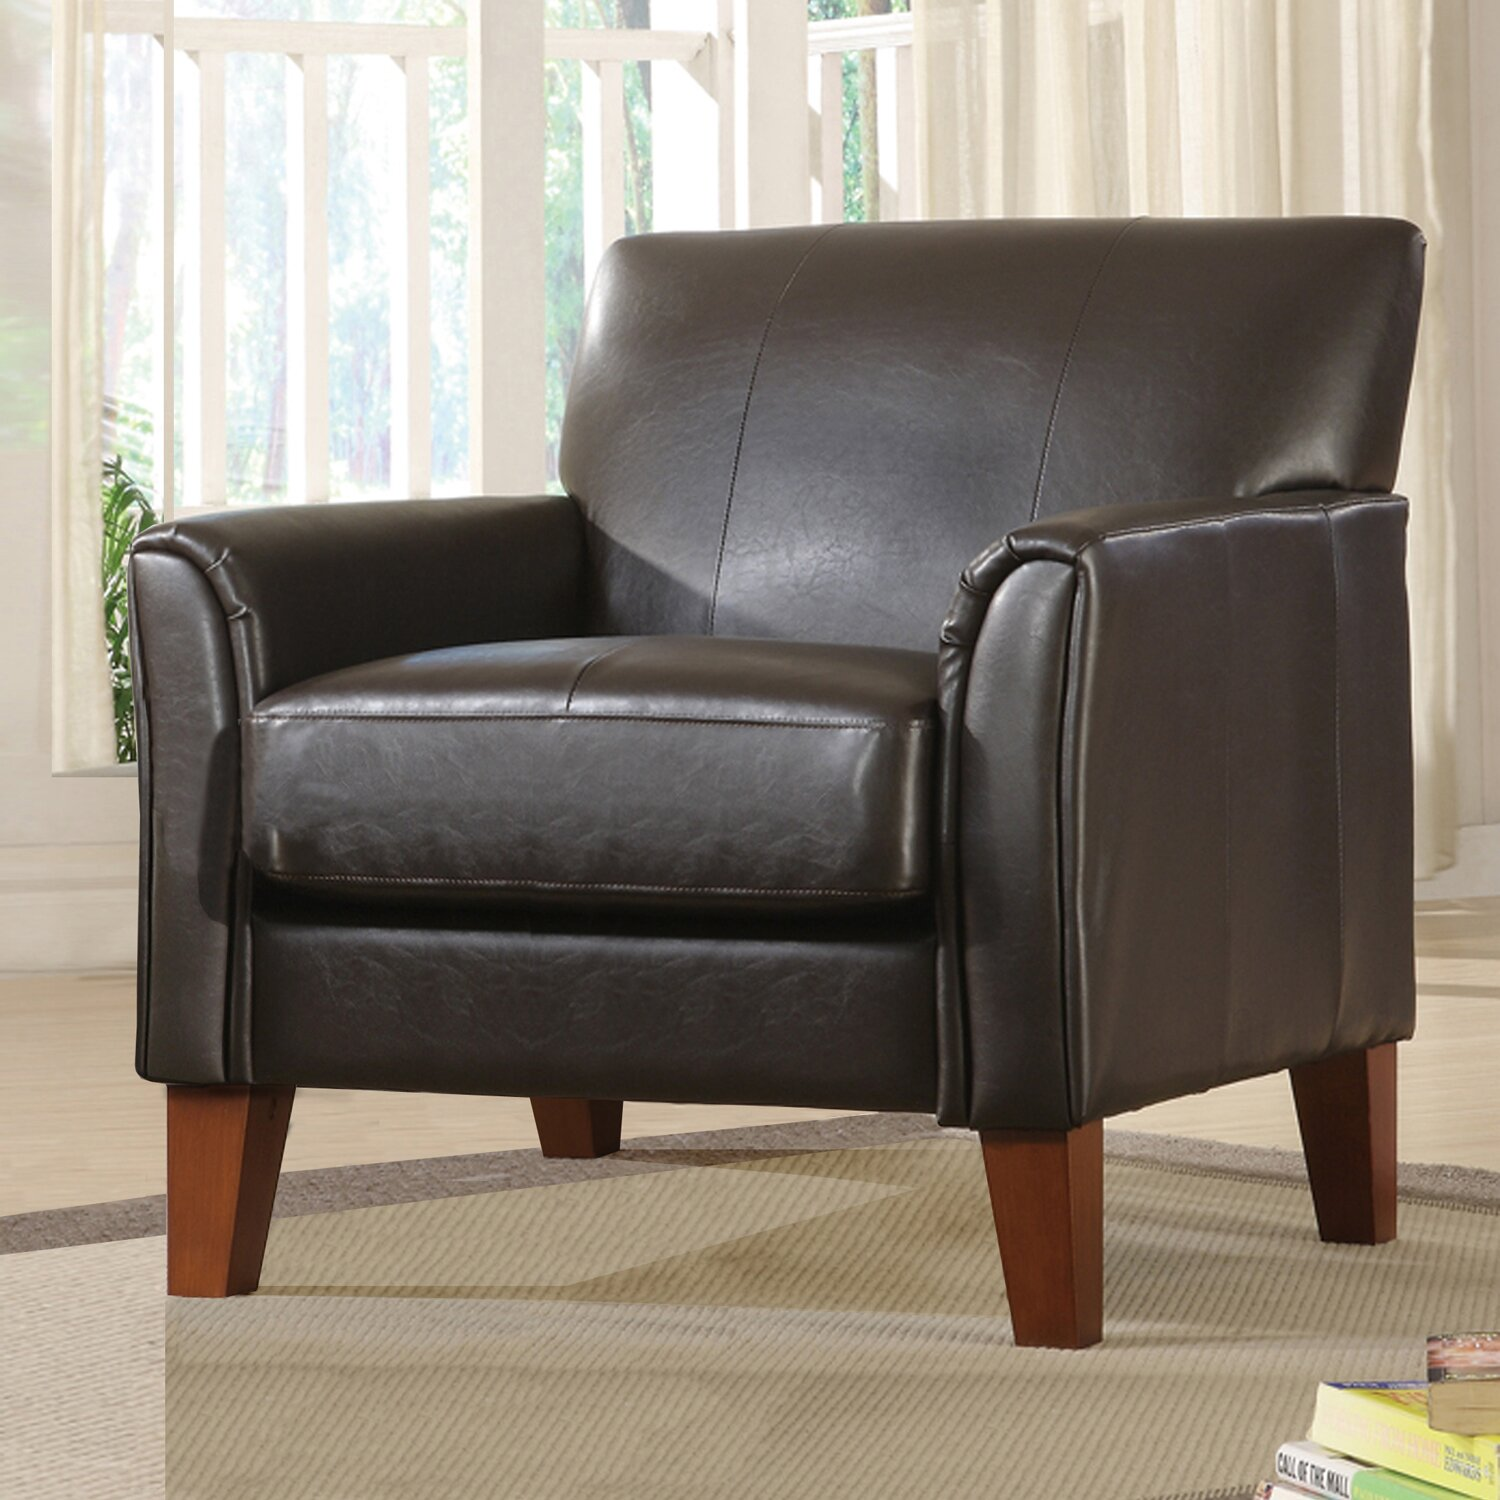 Courtney Armchair and Ottoman Set - furniturefairstore.com